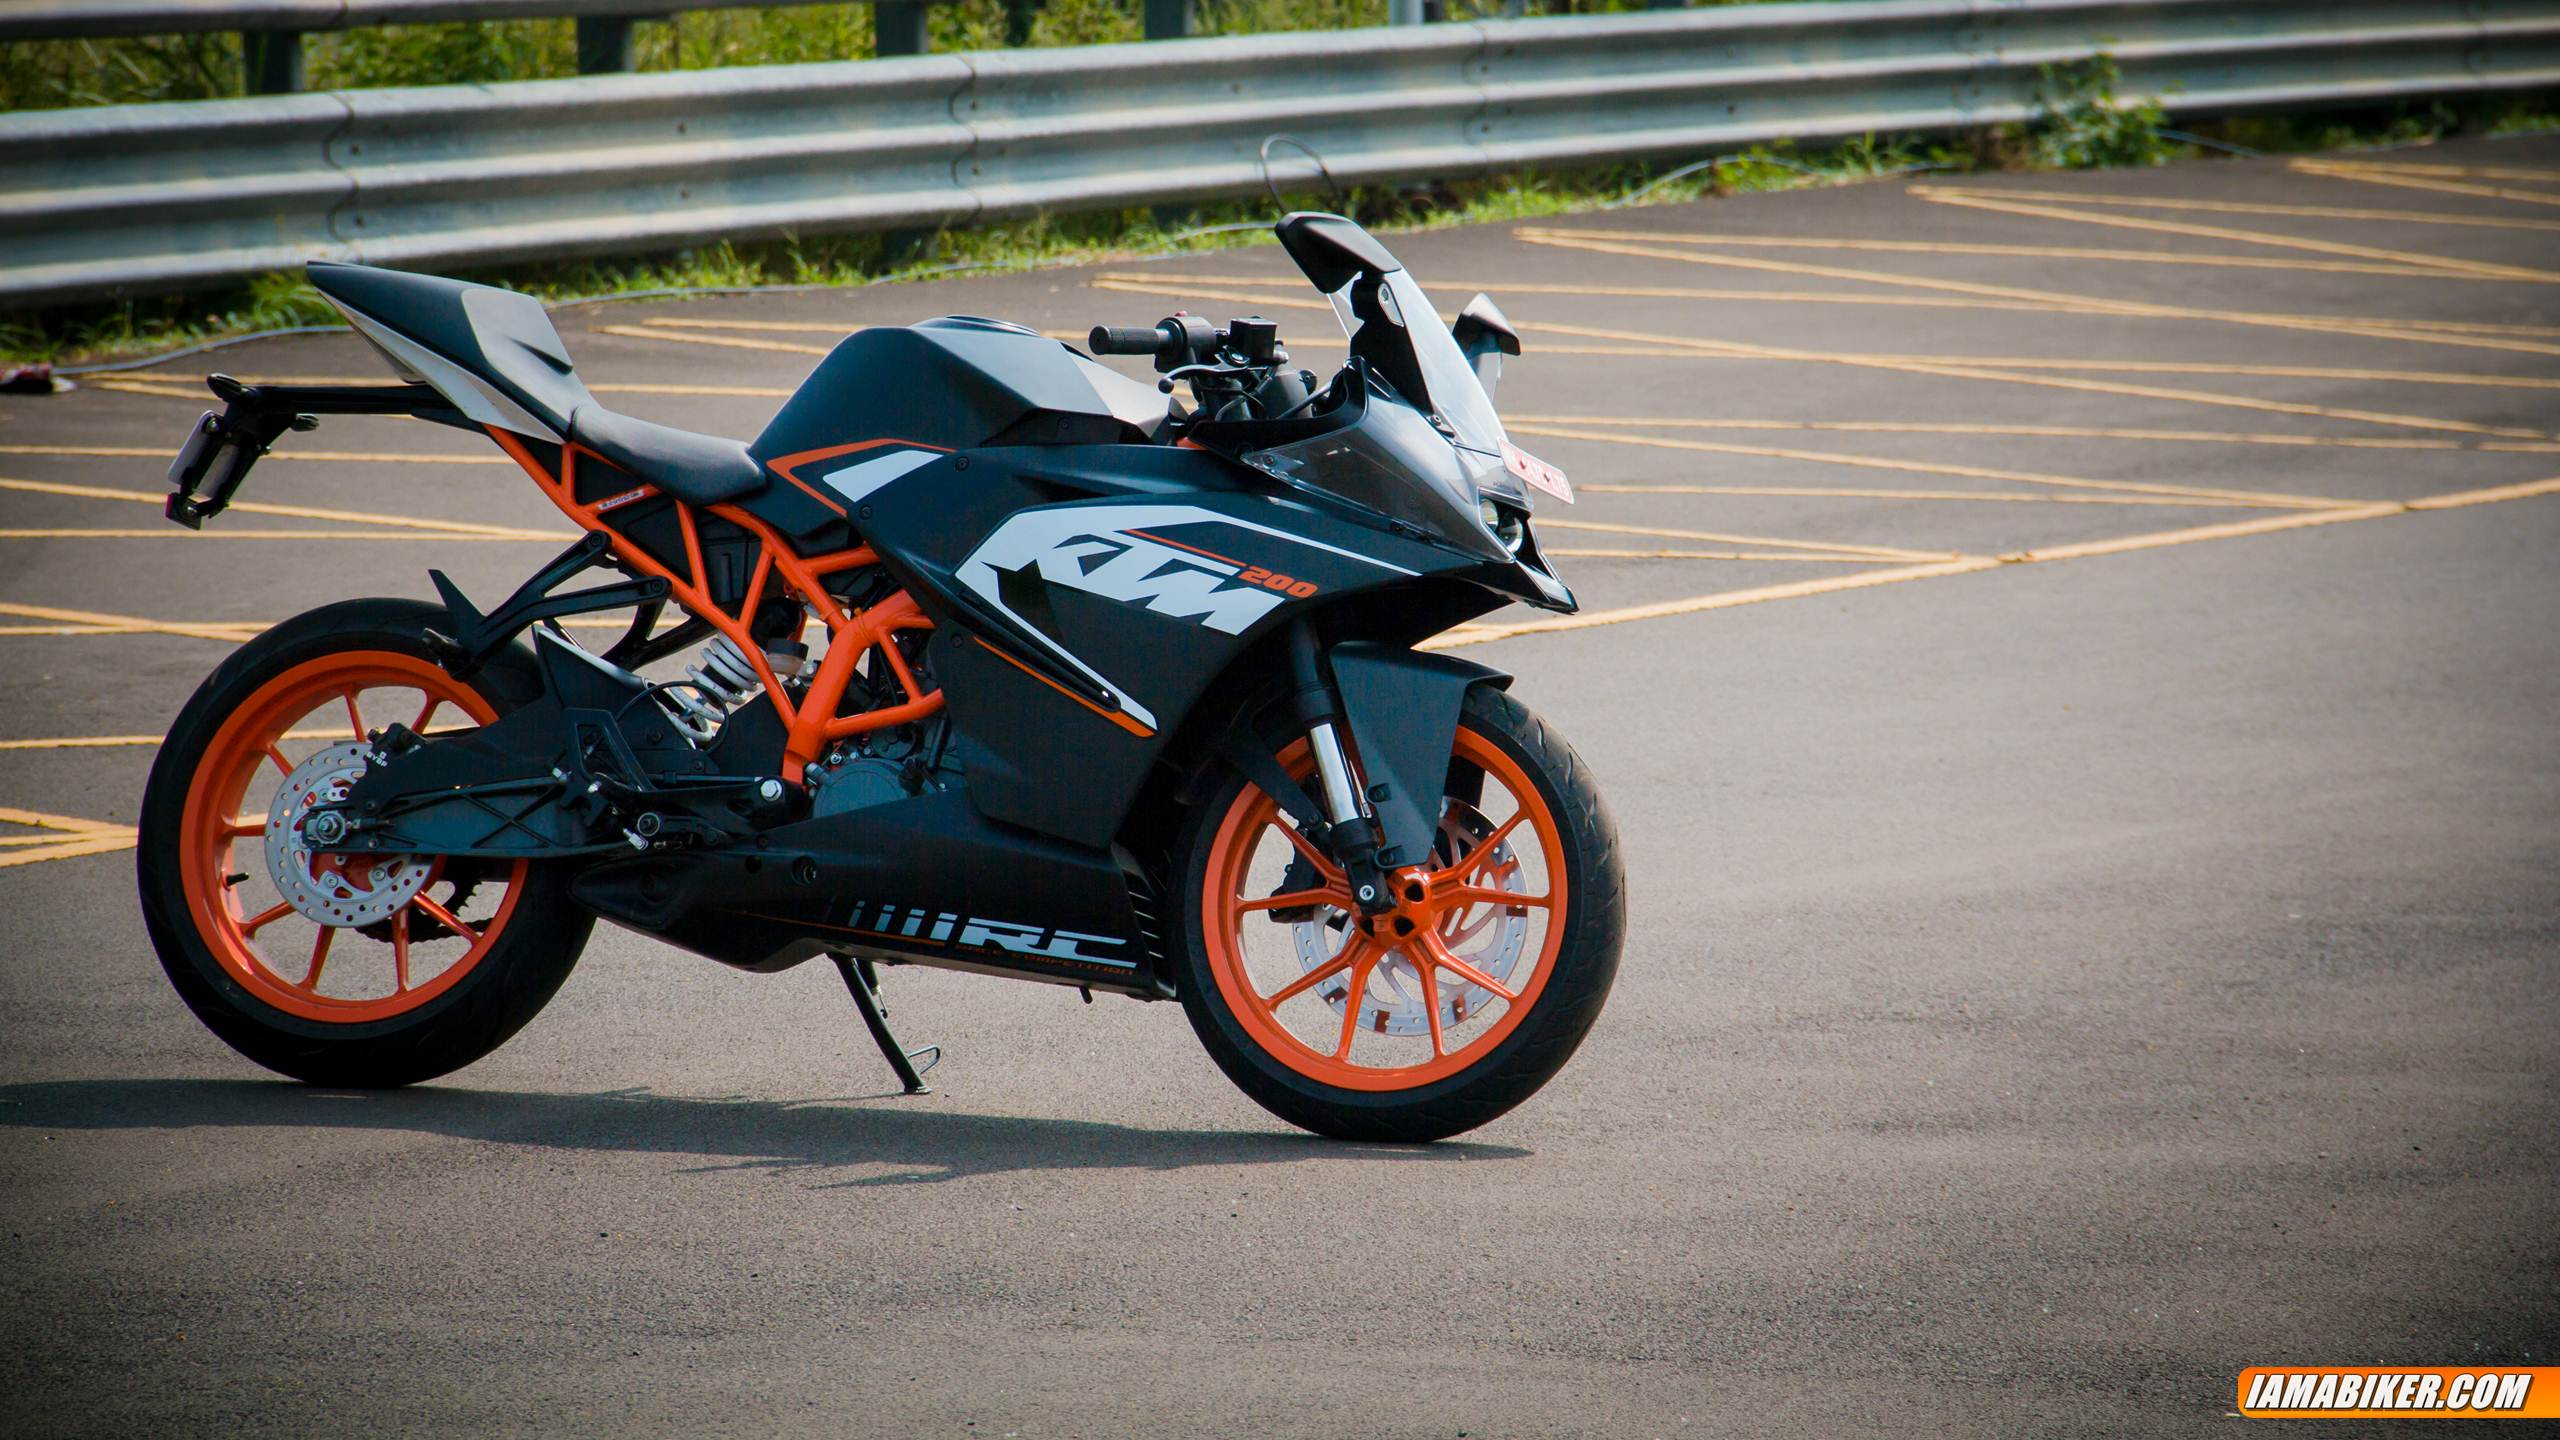 Ktm motorcycles hd wallpapers free wallaper downloads ktm sport - Ktm Rc 390 Project Bike Hd Image